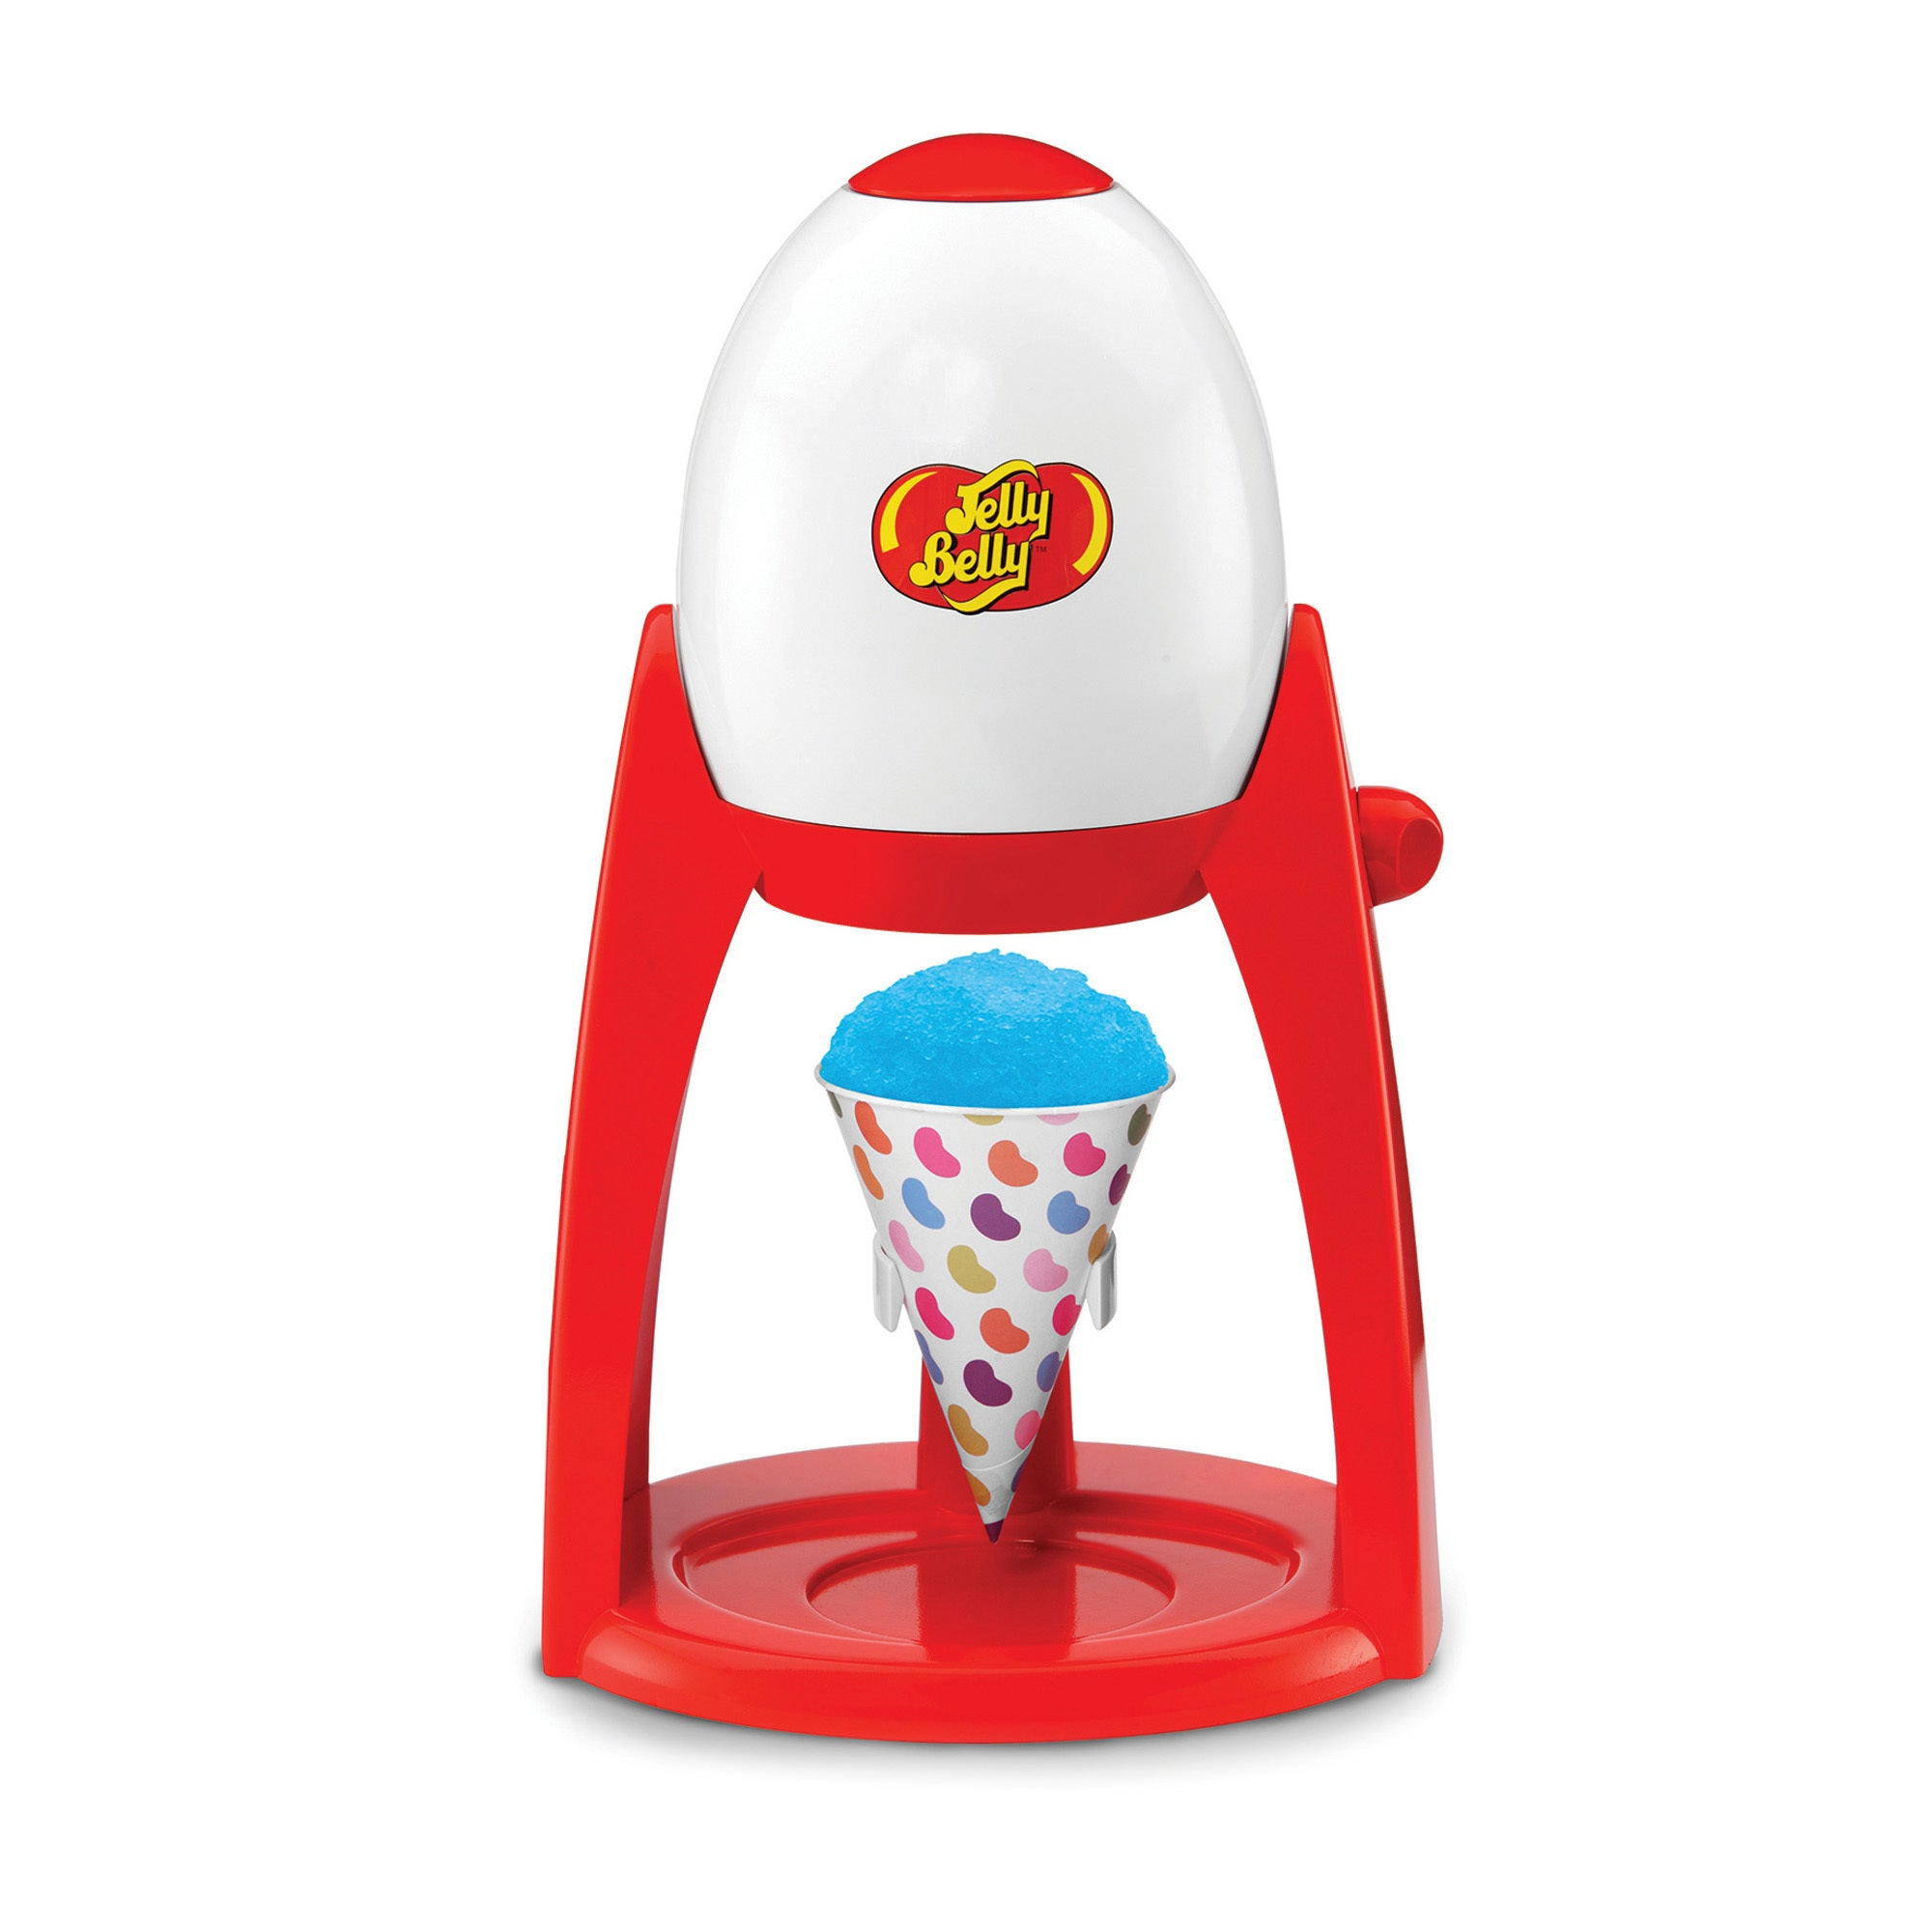 Jelly Belly Electric Ice Shaver, Red (Red)